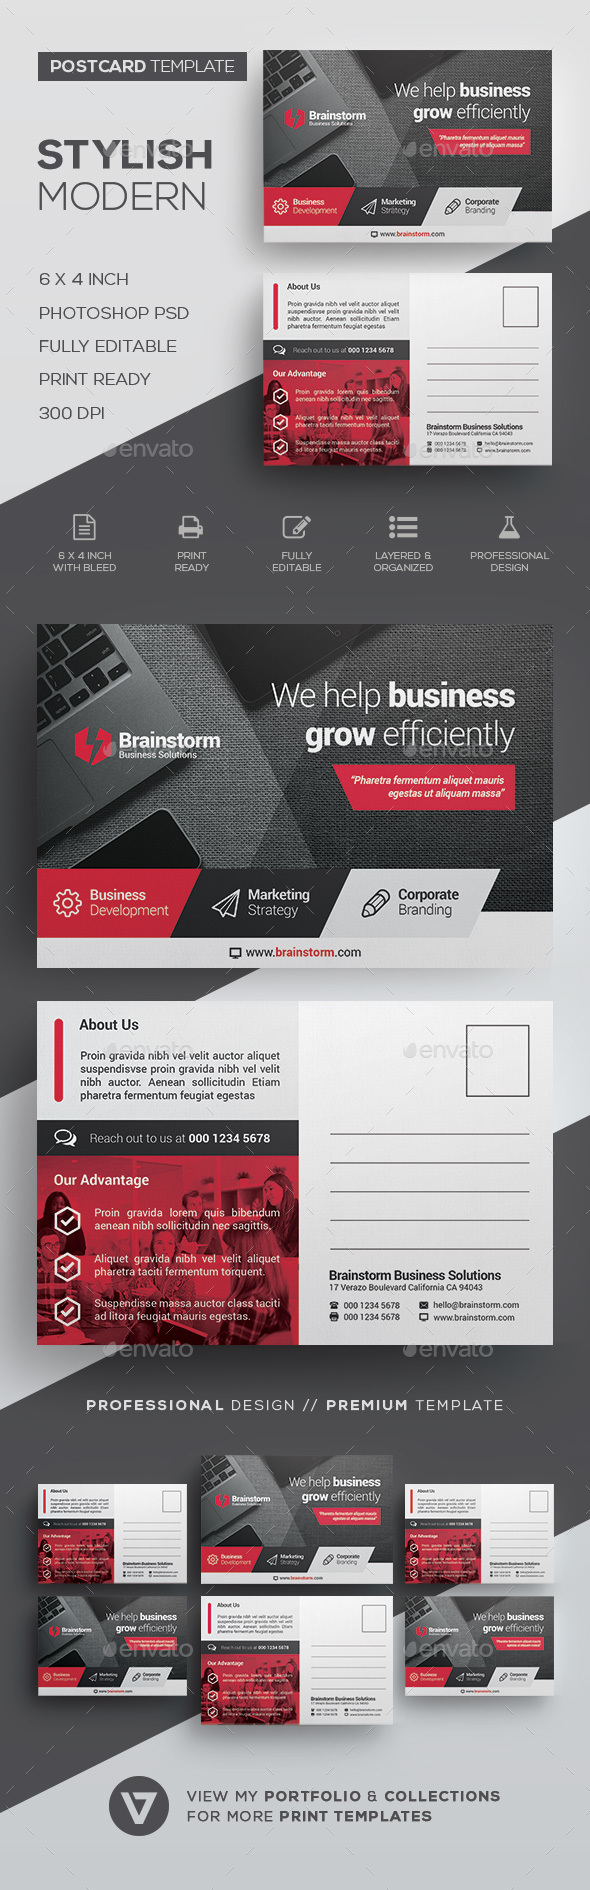 GraphicRiver Postcard Template 20990382